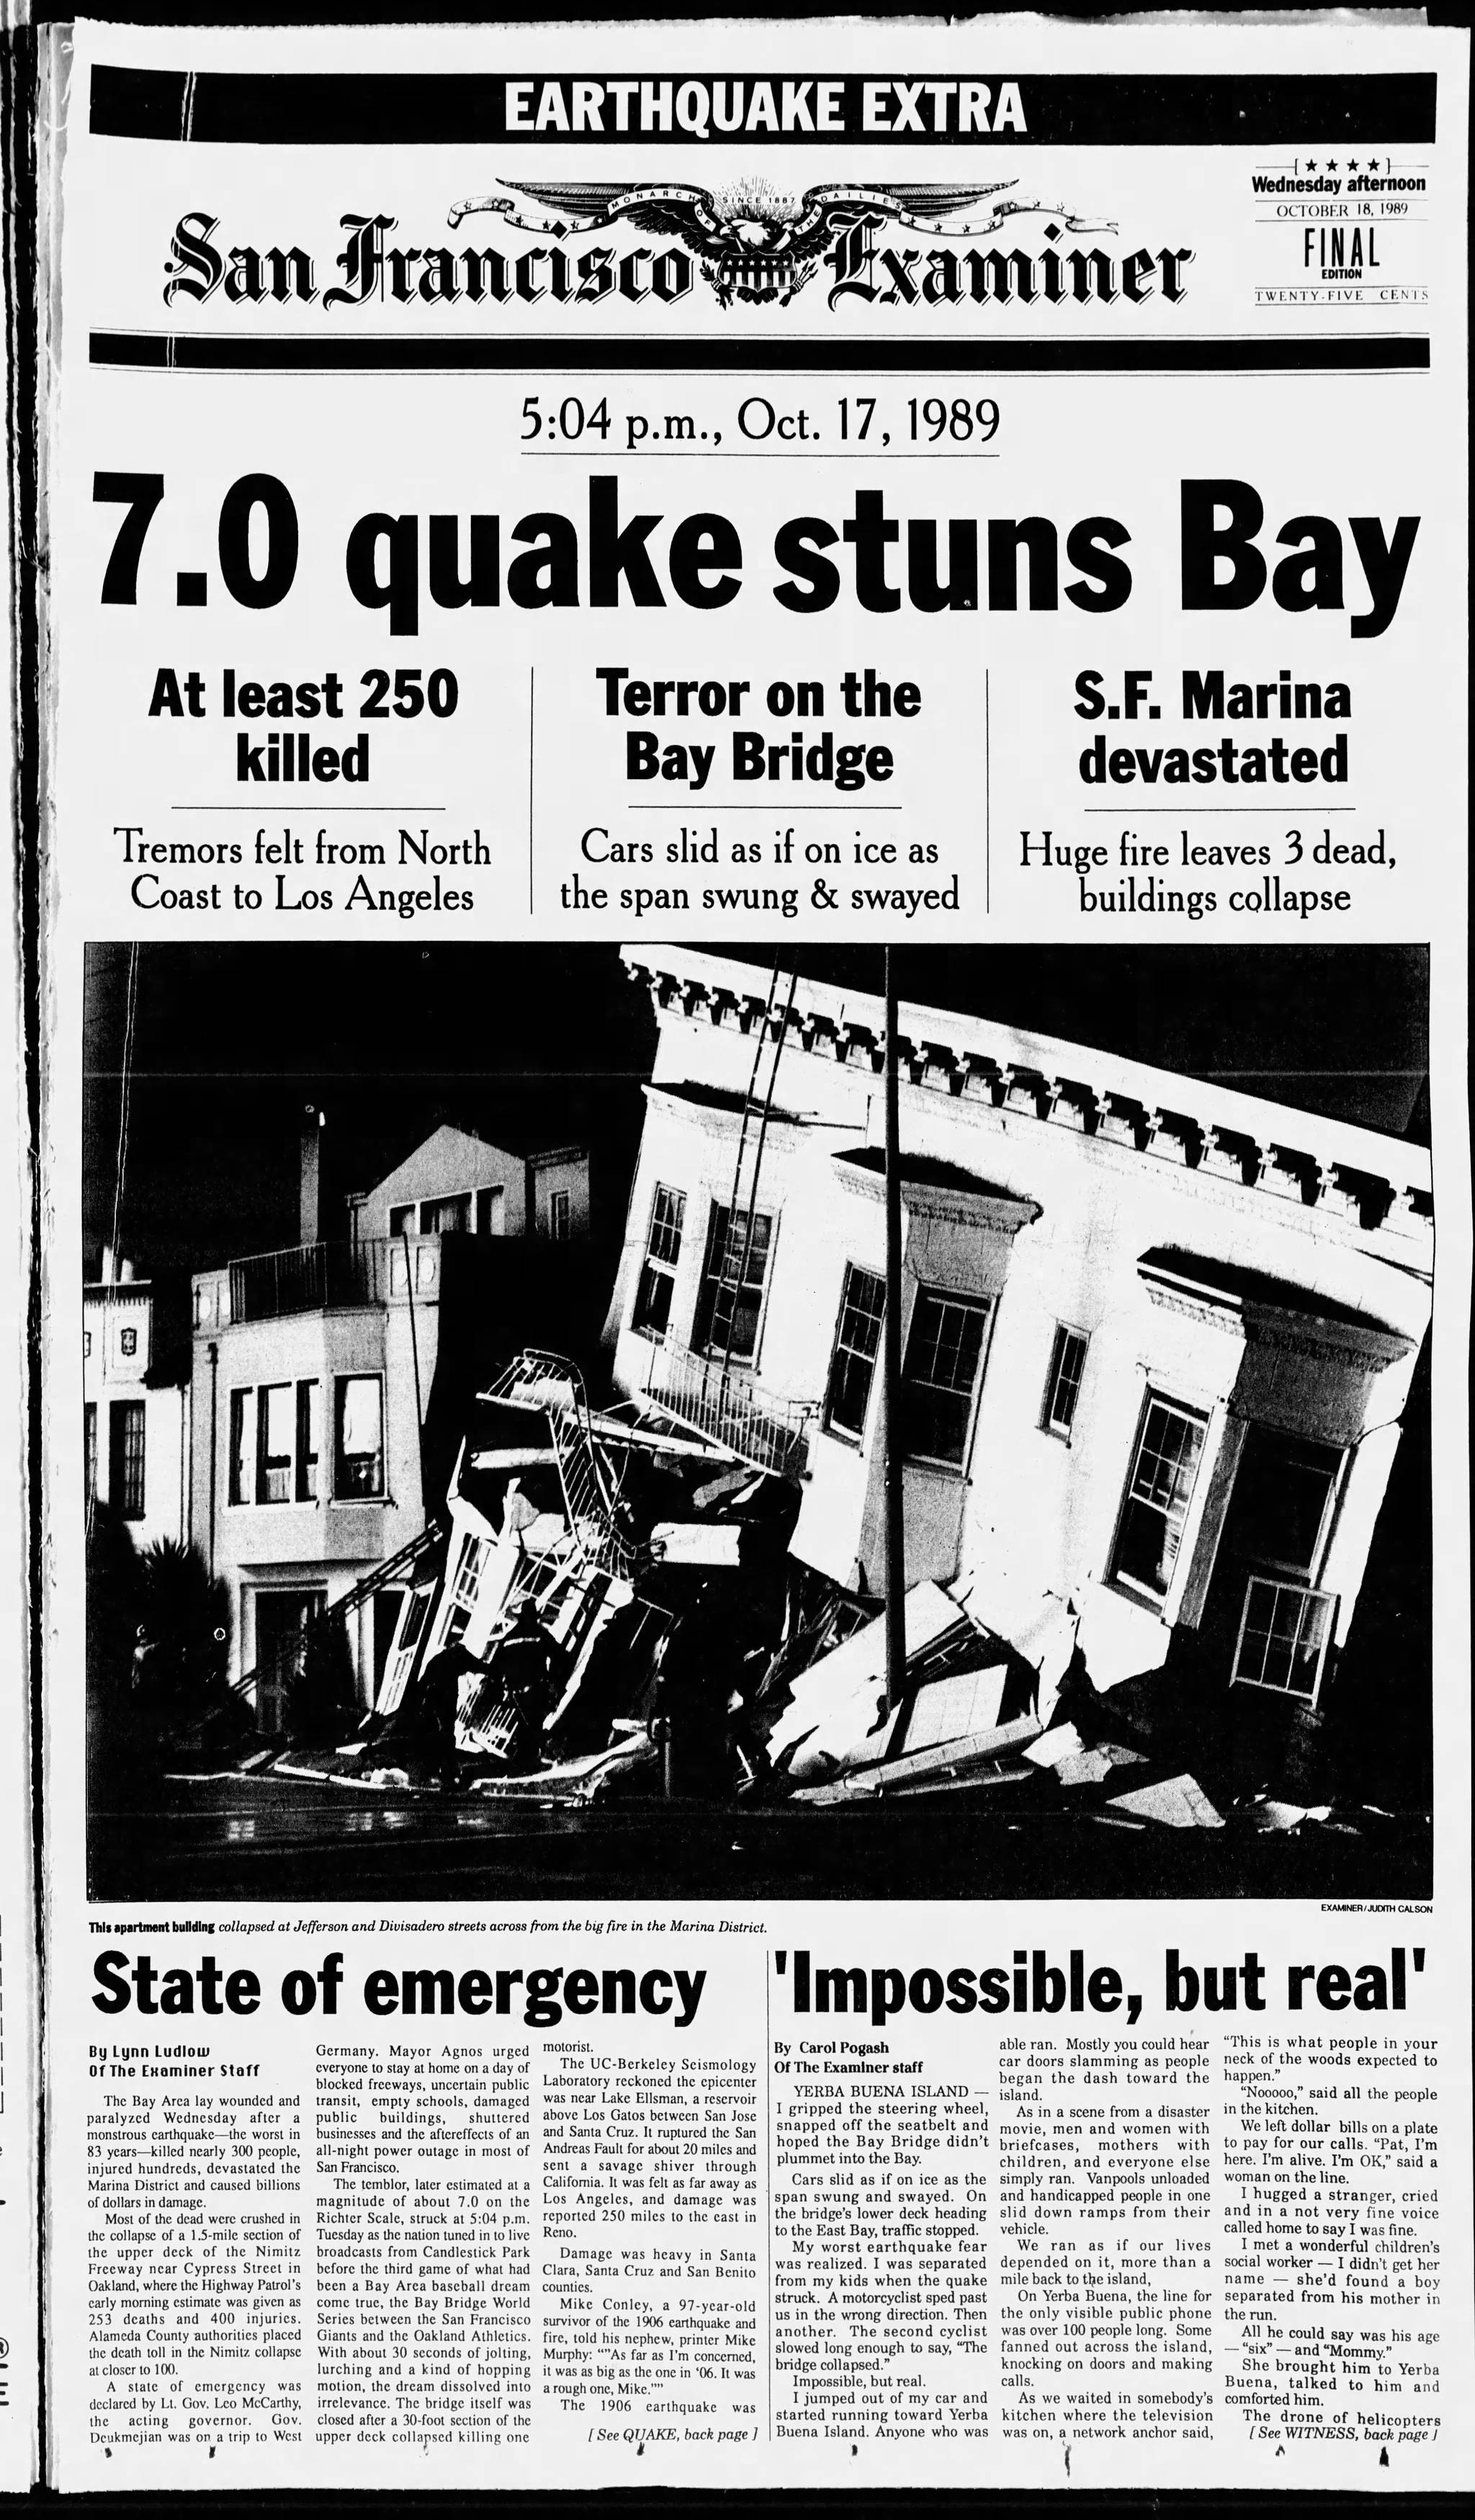 Thirty years after Loma Prieta, is San Francisco ready for the next 'big one?'